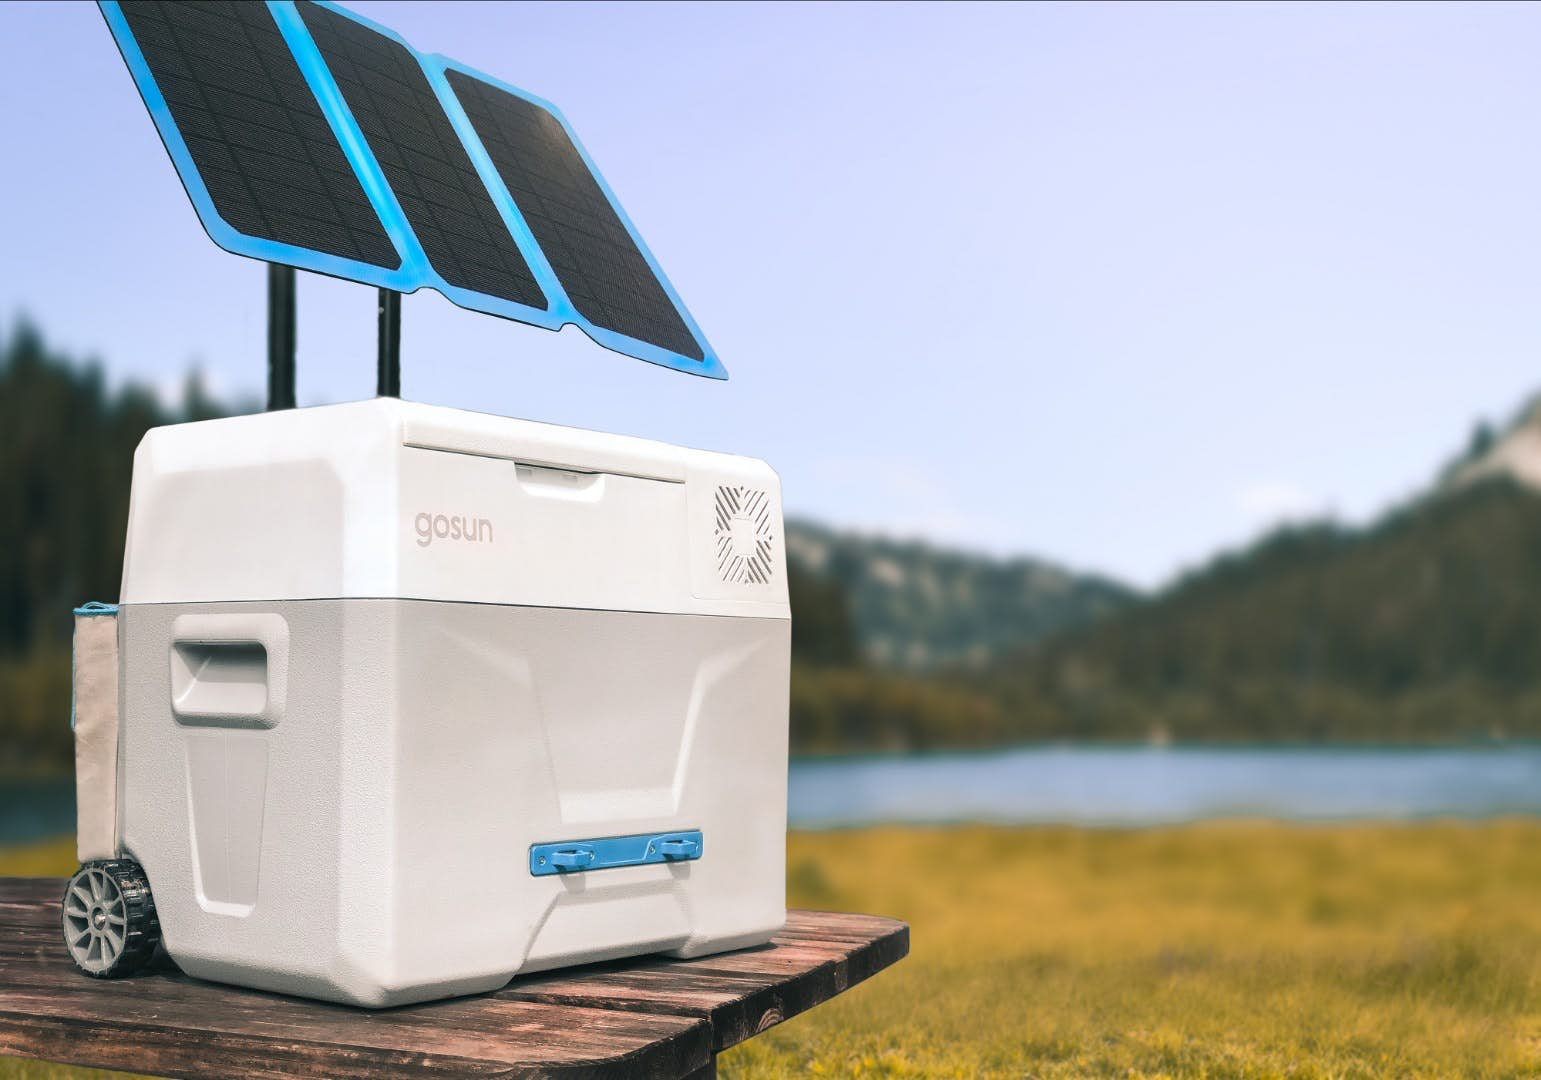 GoSun Chill Keeps Your Items Chilled Using The Power Of The Sun